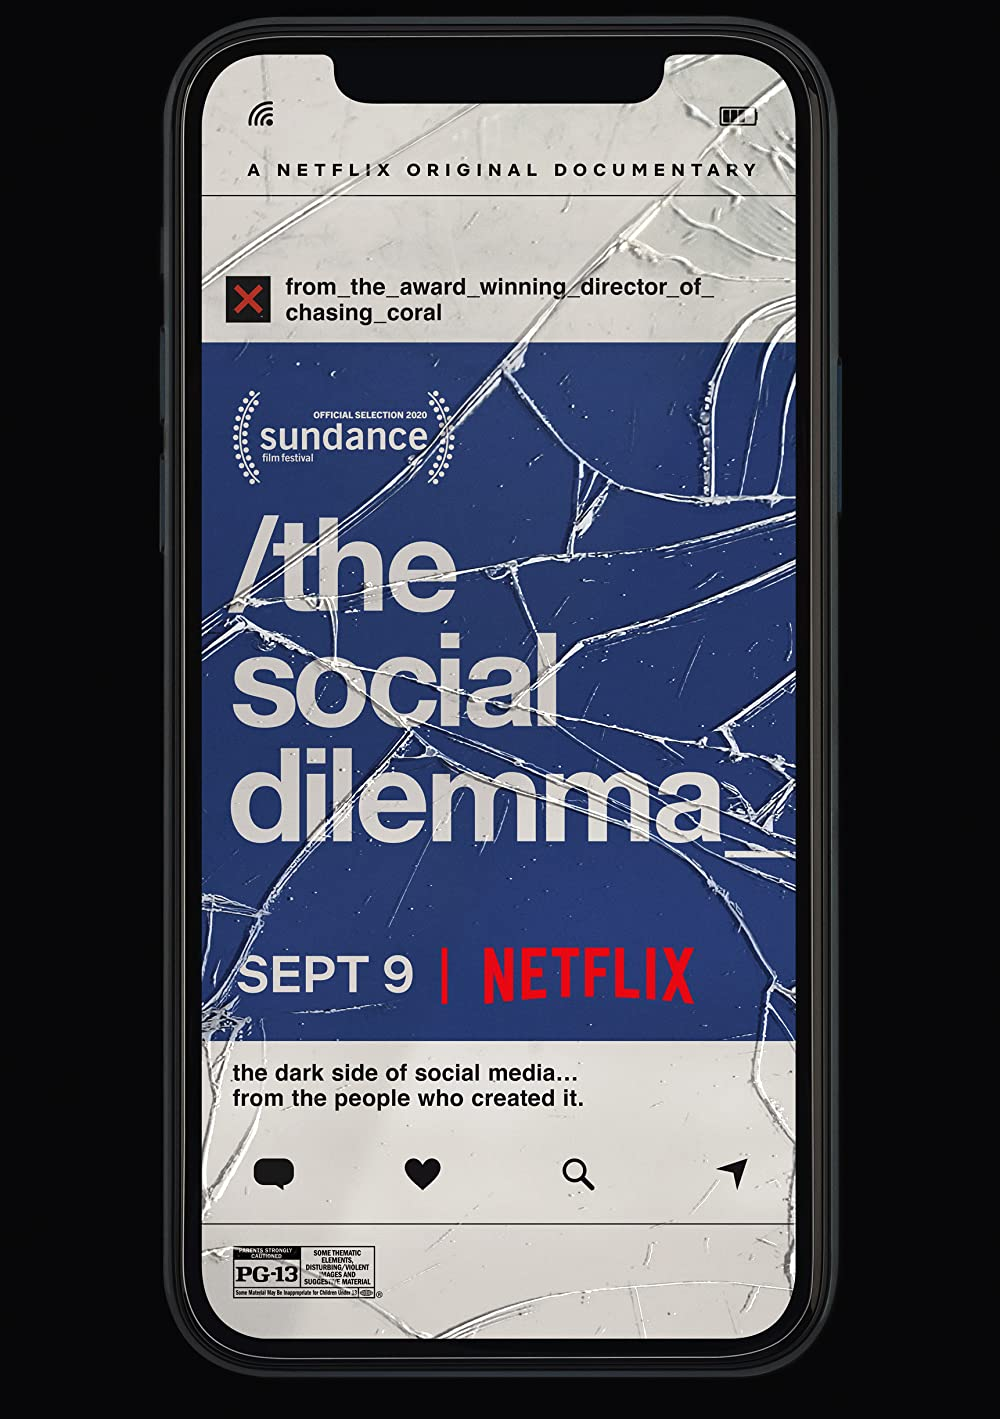 Das Dilemma mit den sozialen Medien: Directed by Jeff Orlowski. With Tristan Harris, Jeff Seibert, Bailey Richardson, Joe Toscano. Explores the dangerous human impact of social networking, with tech experts sounding the alarm on their own creations.